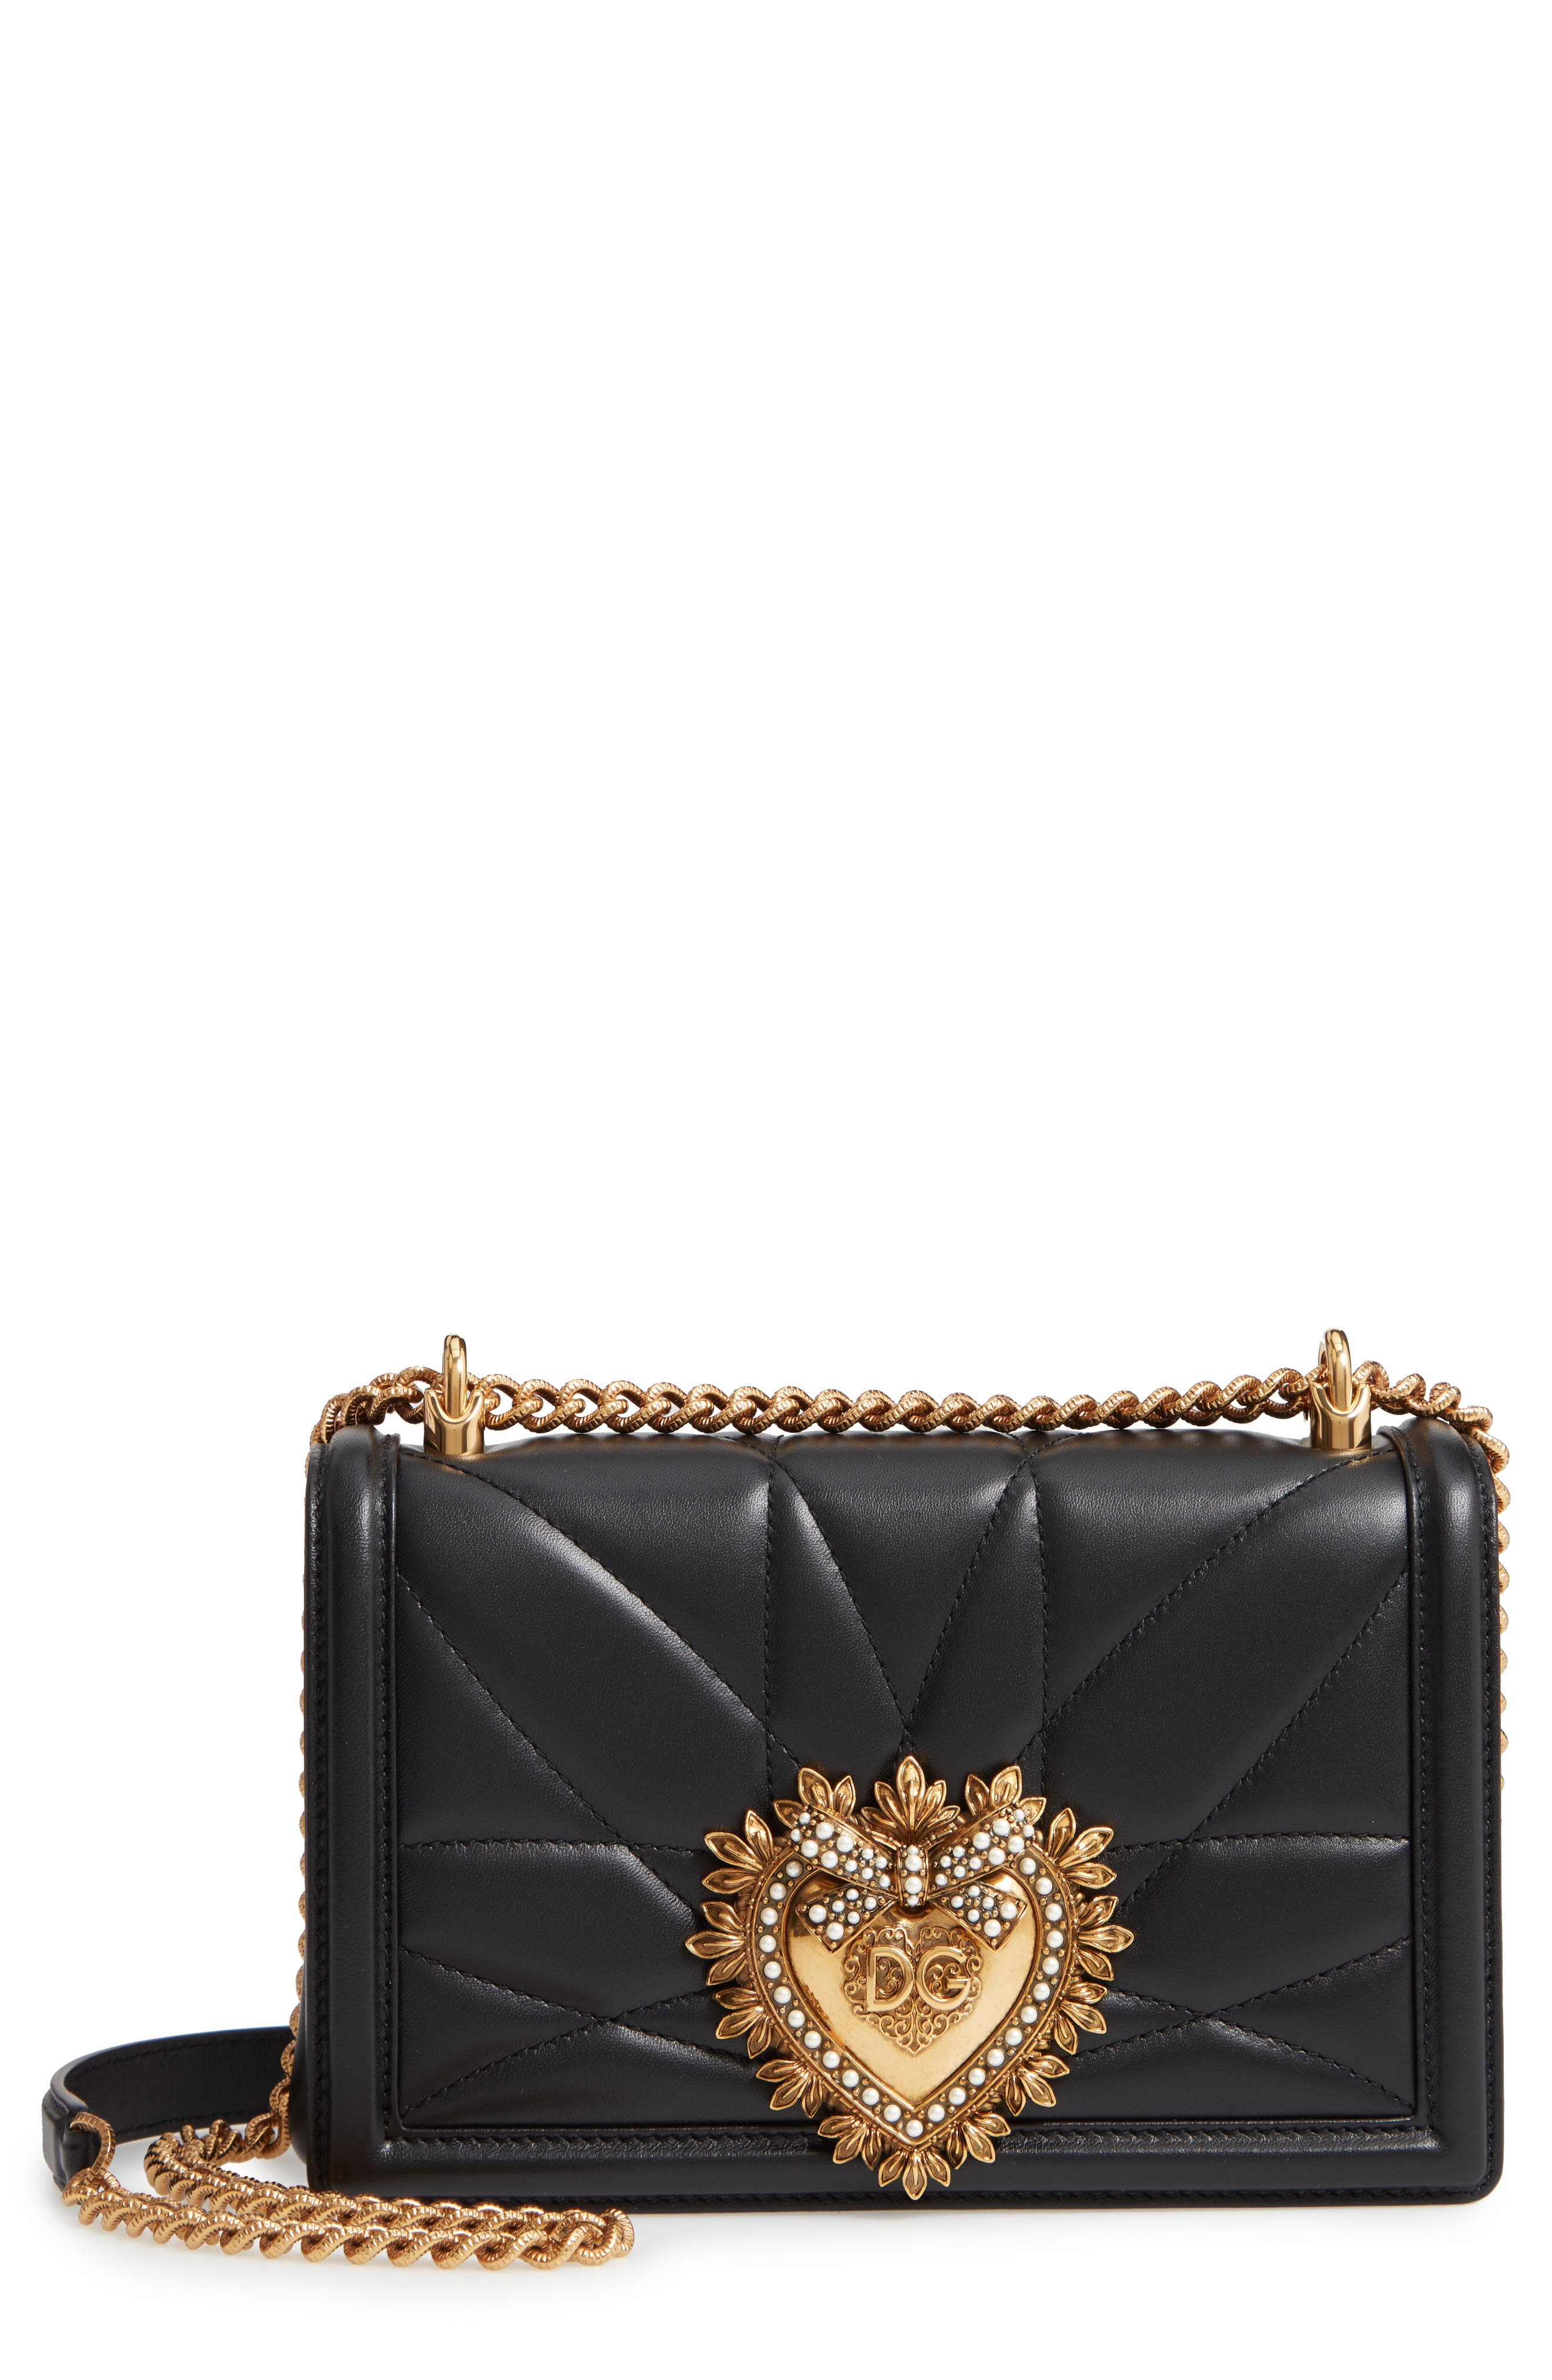 Dolce   Gabbana Handbags   Purses   Nordstrom 01e8e20be2